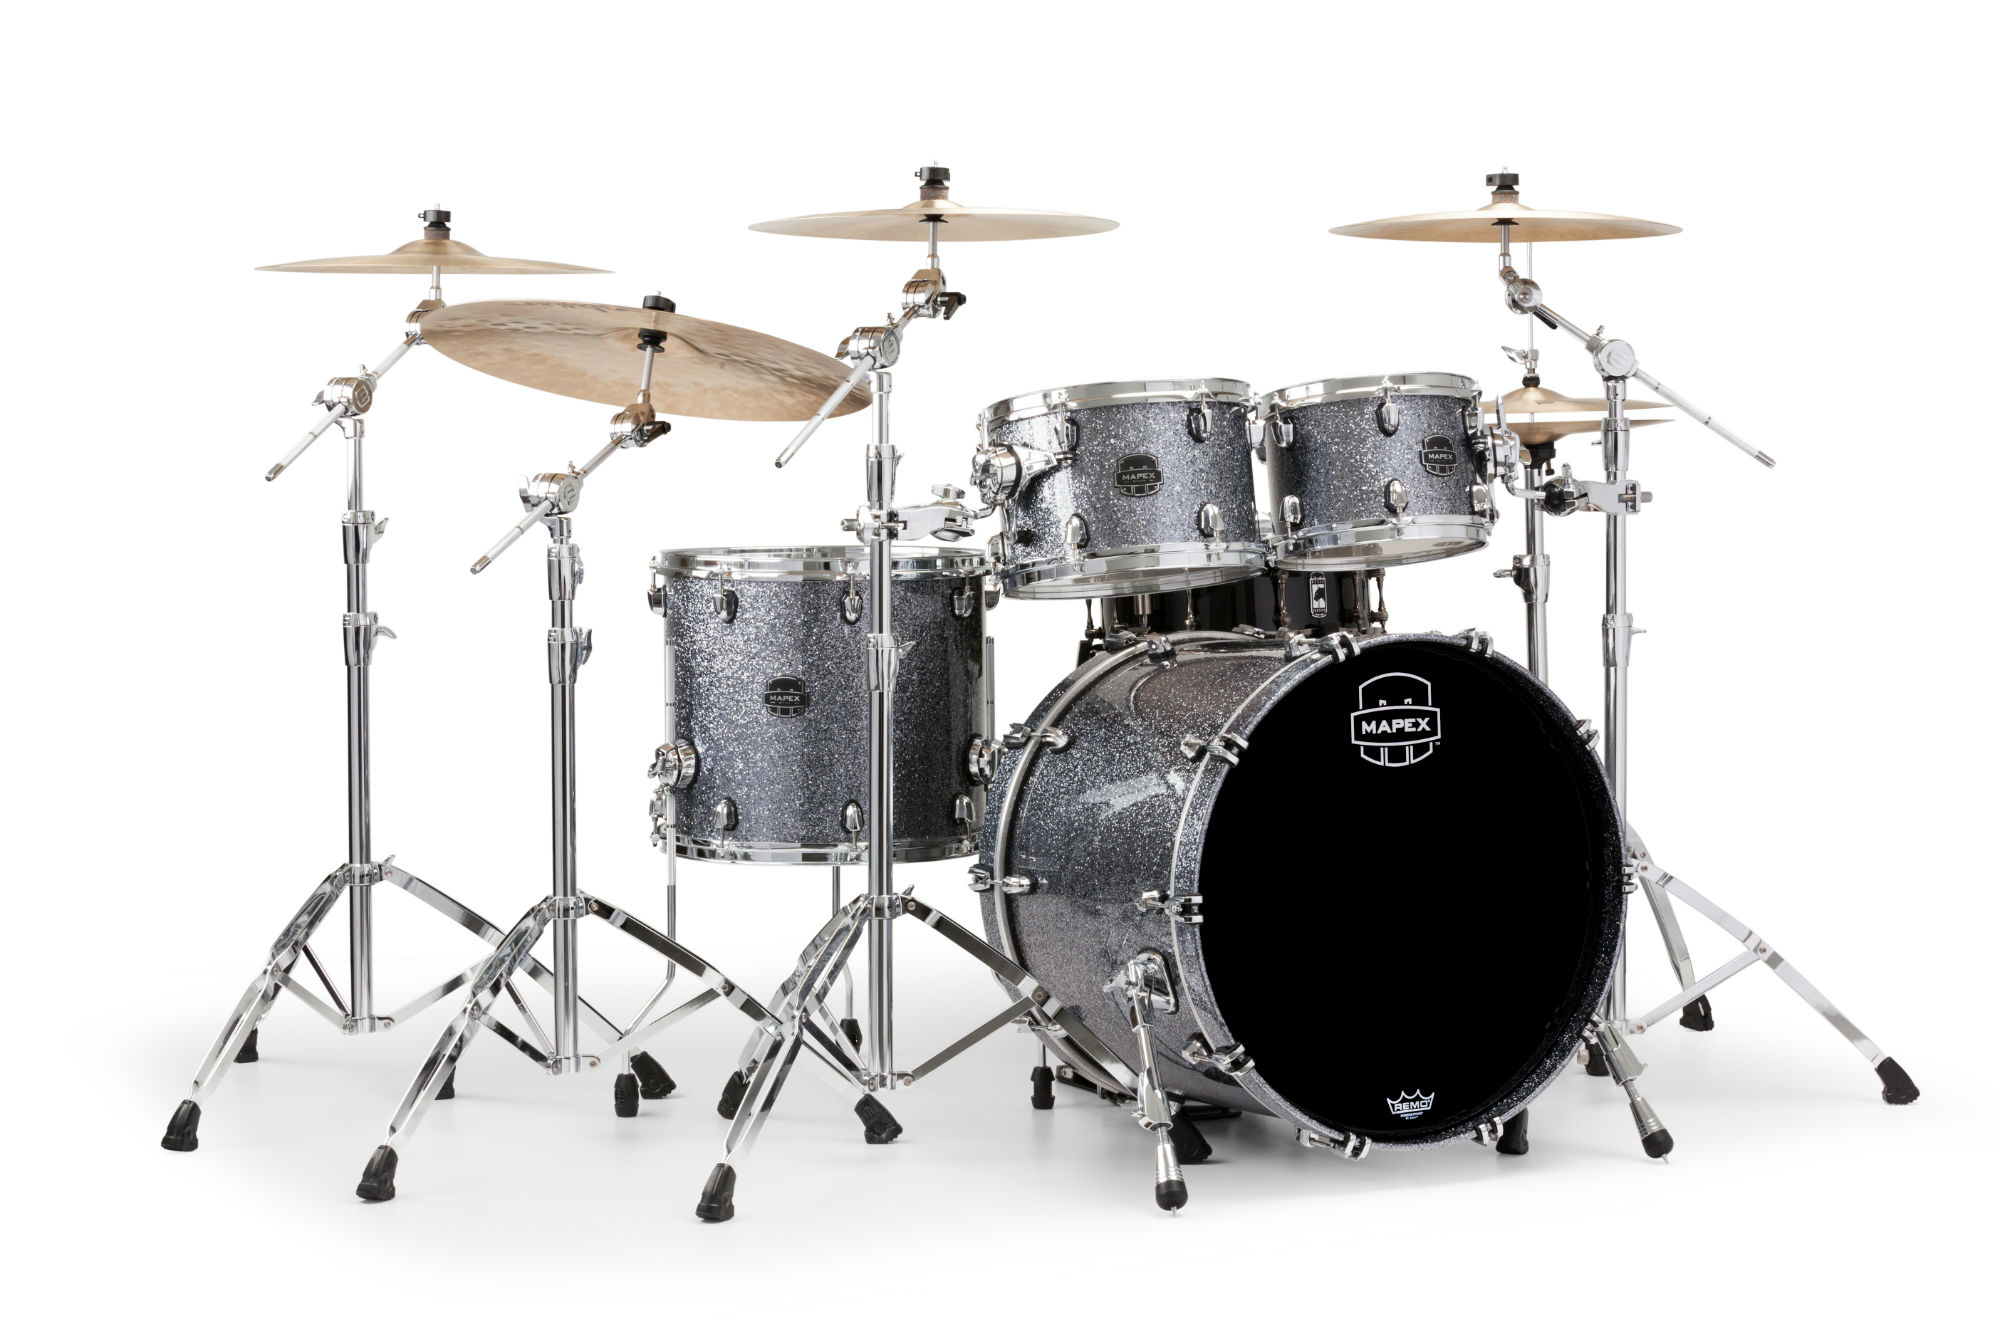 Mapex Saturn V MH Rock 4-piece shell pack with SONIClear Edge - SV529XUQL - Granite Sparkle